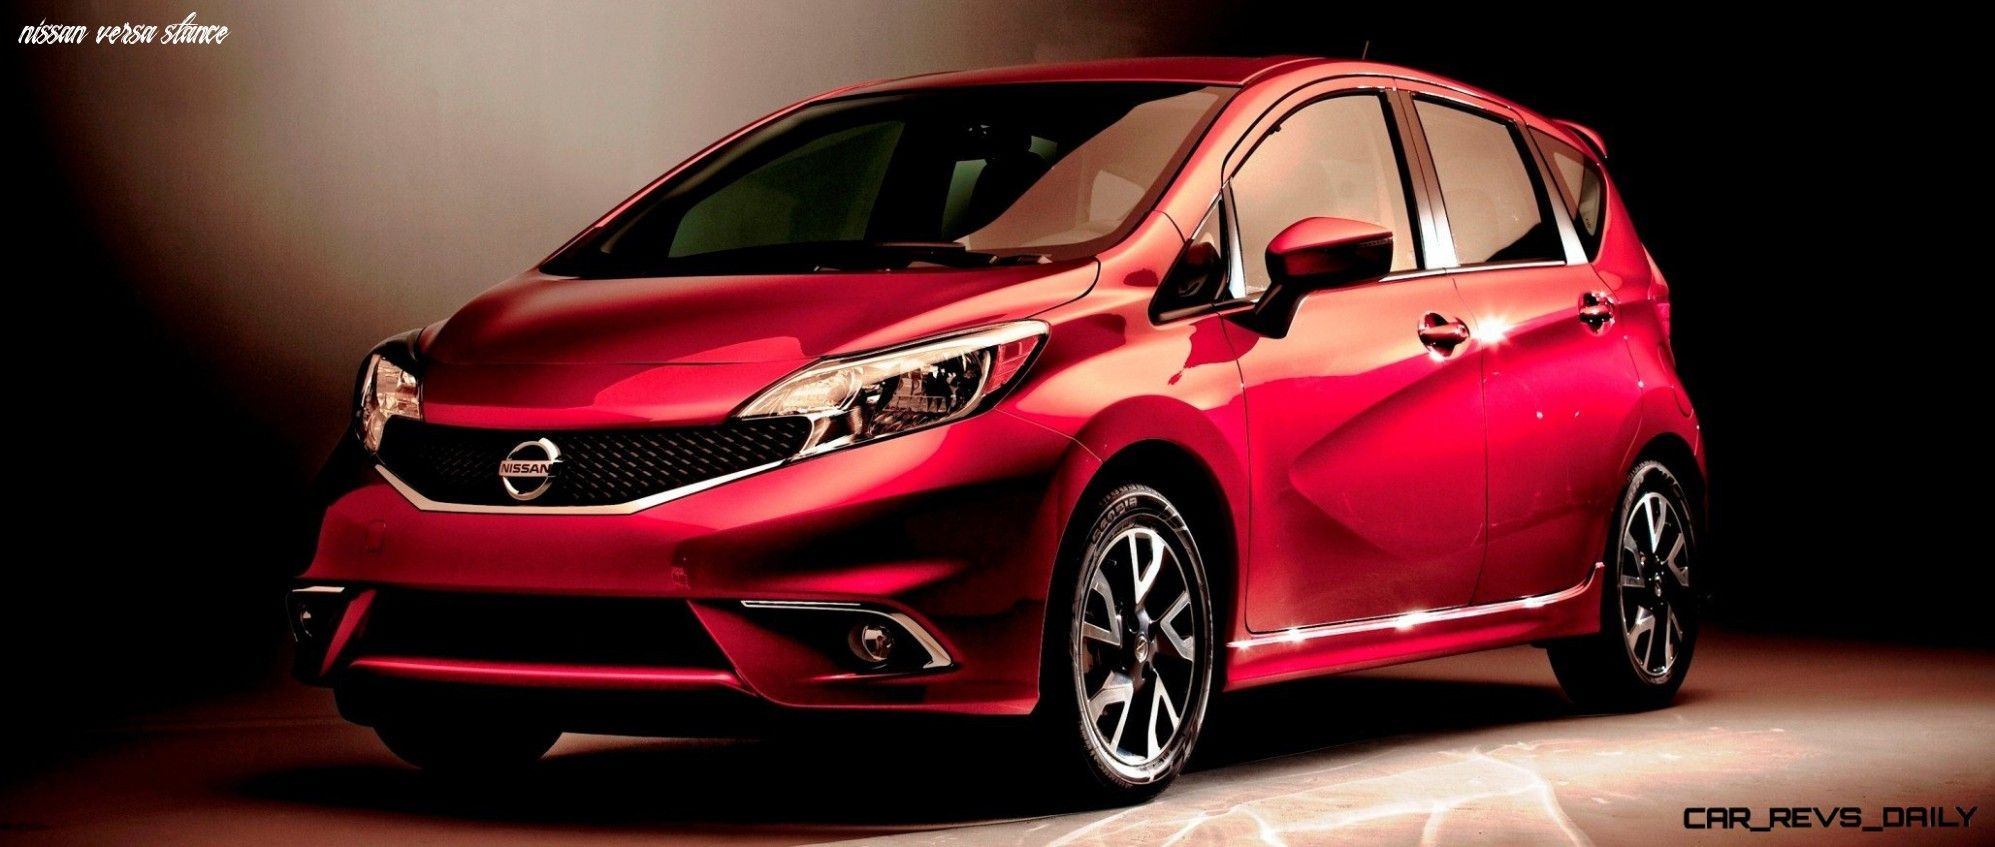 Five Facts You Never Knew About Nissan Versa Stance di 2020